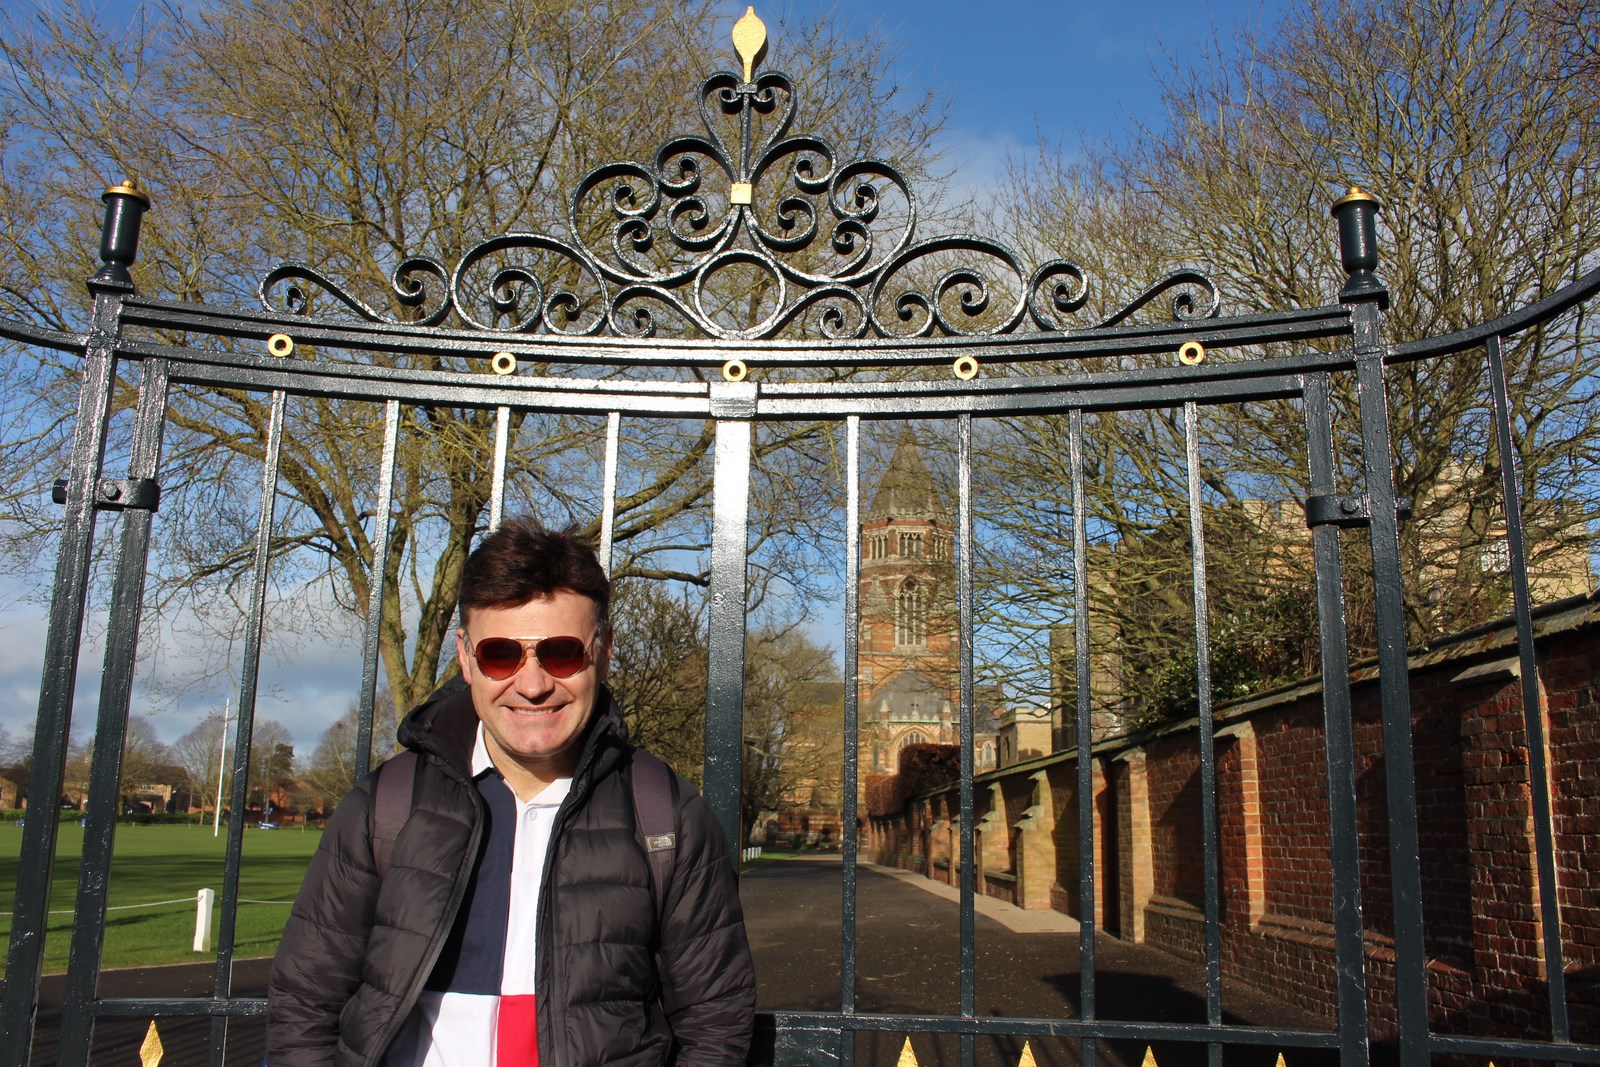 Days out in Warwickshire - Rugby school